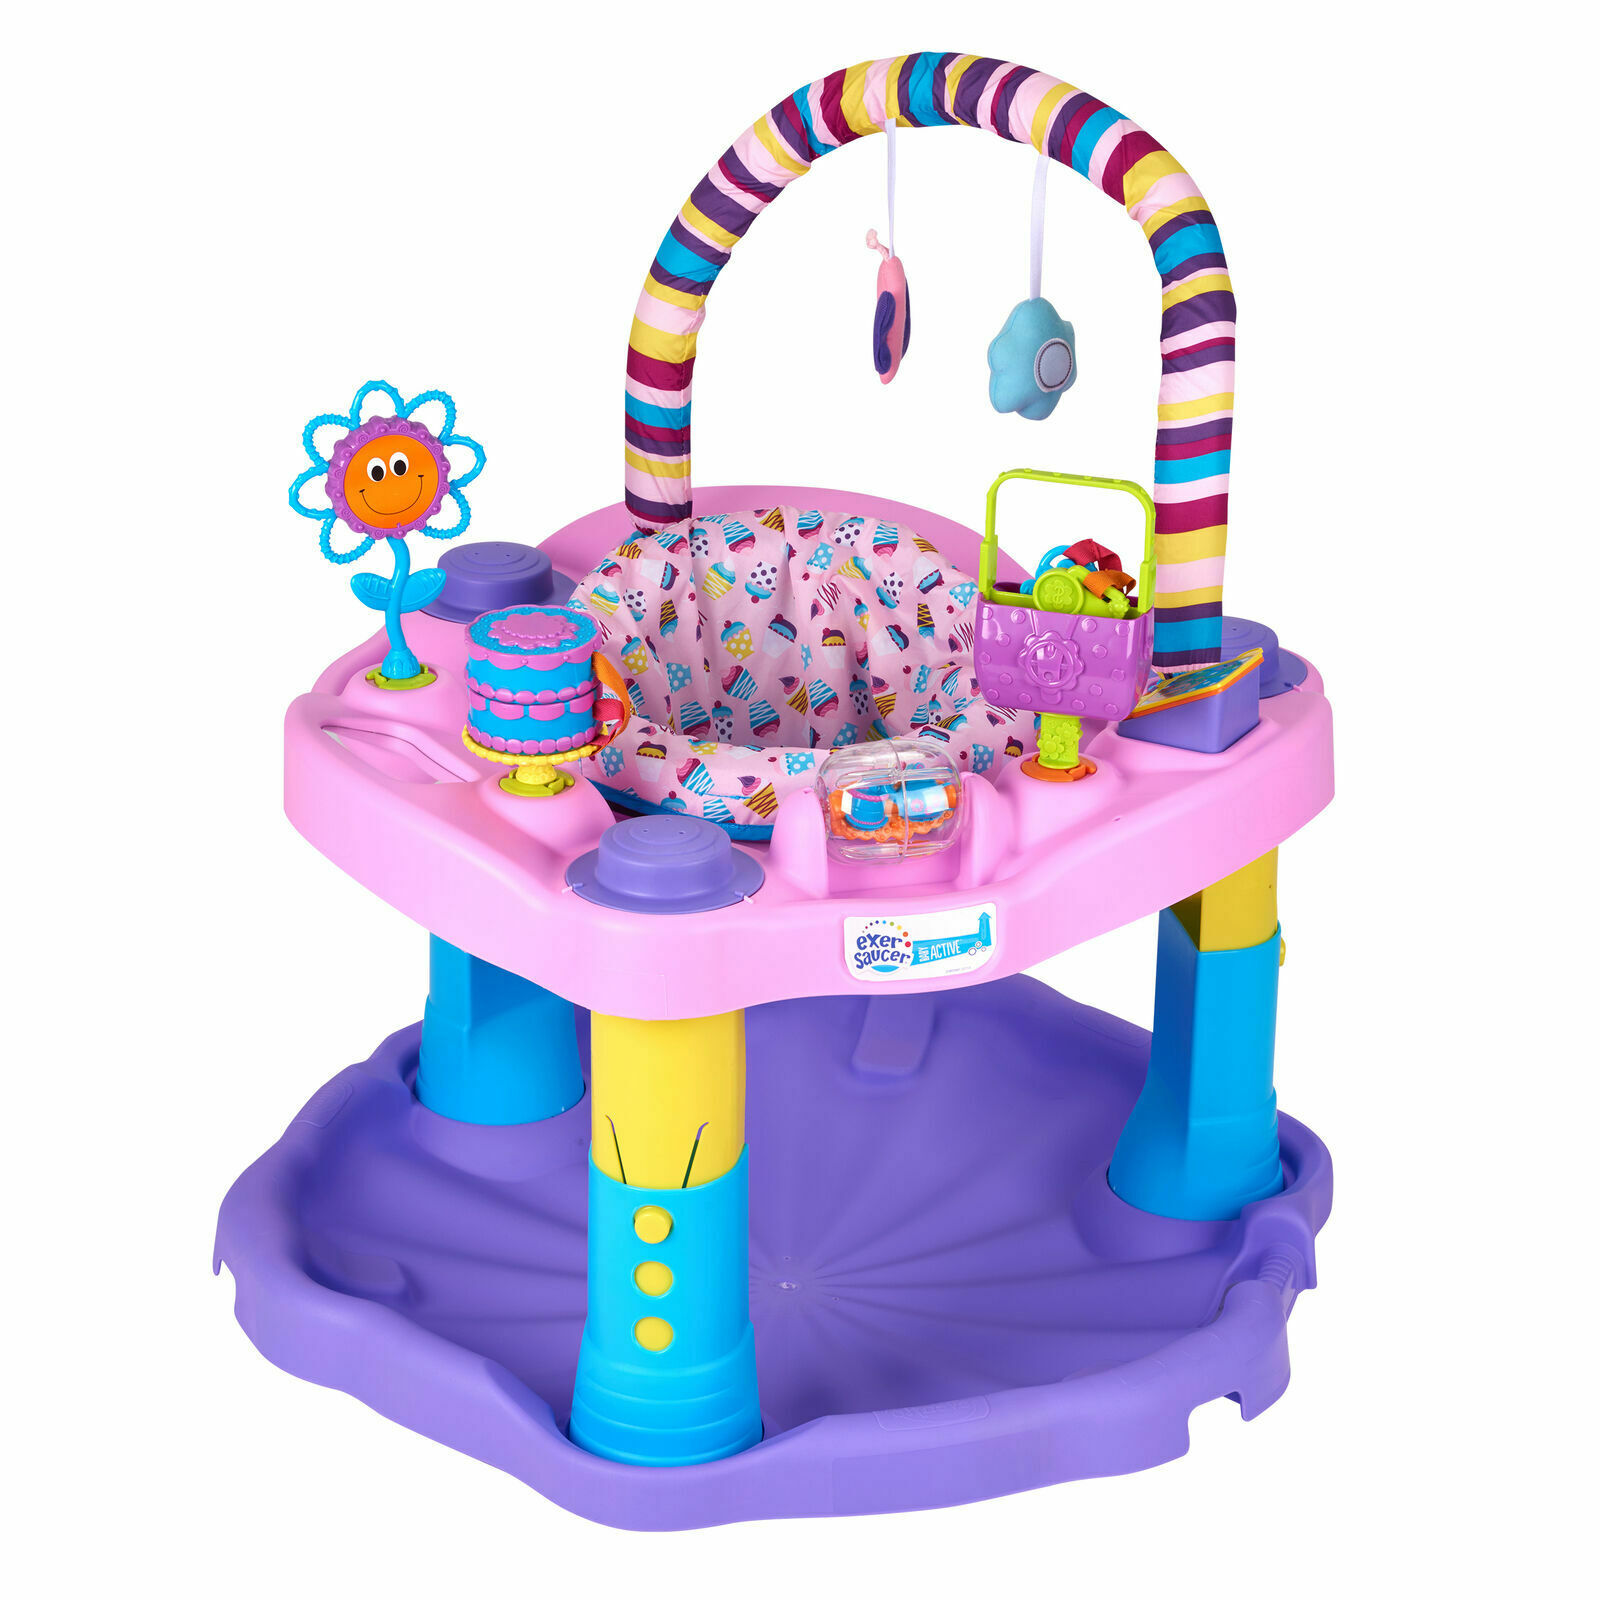 Evenflo Stabilizer Feet Replacement Sweet Tea Party Exersaucer Evenflo 6164920 - фотография #6